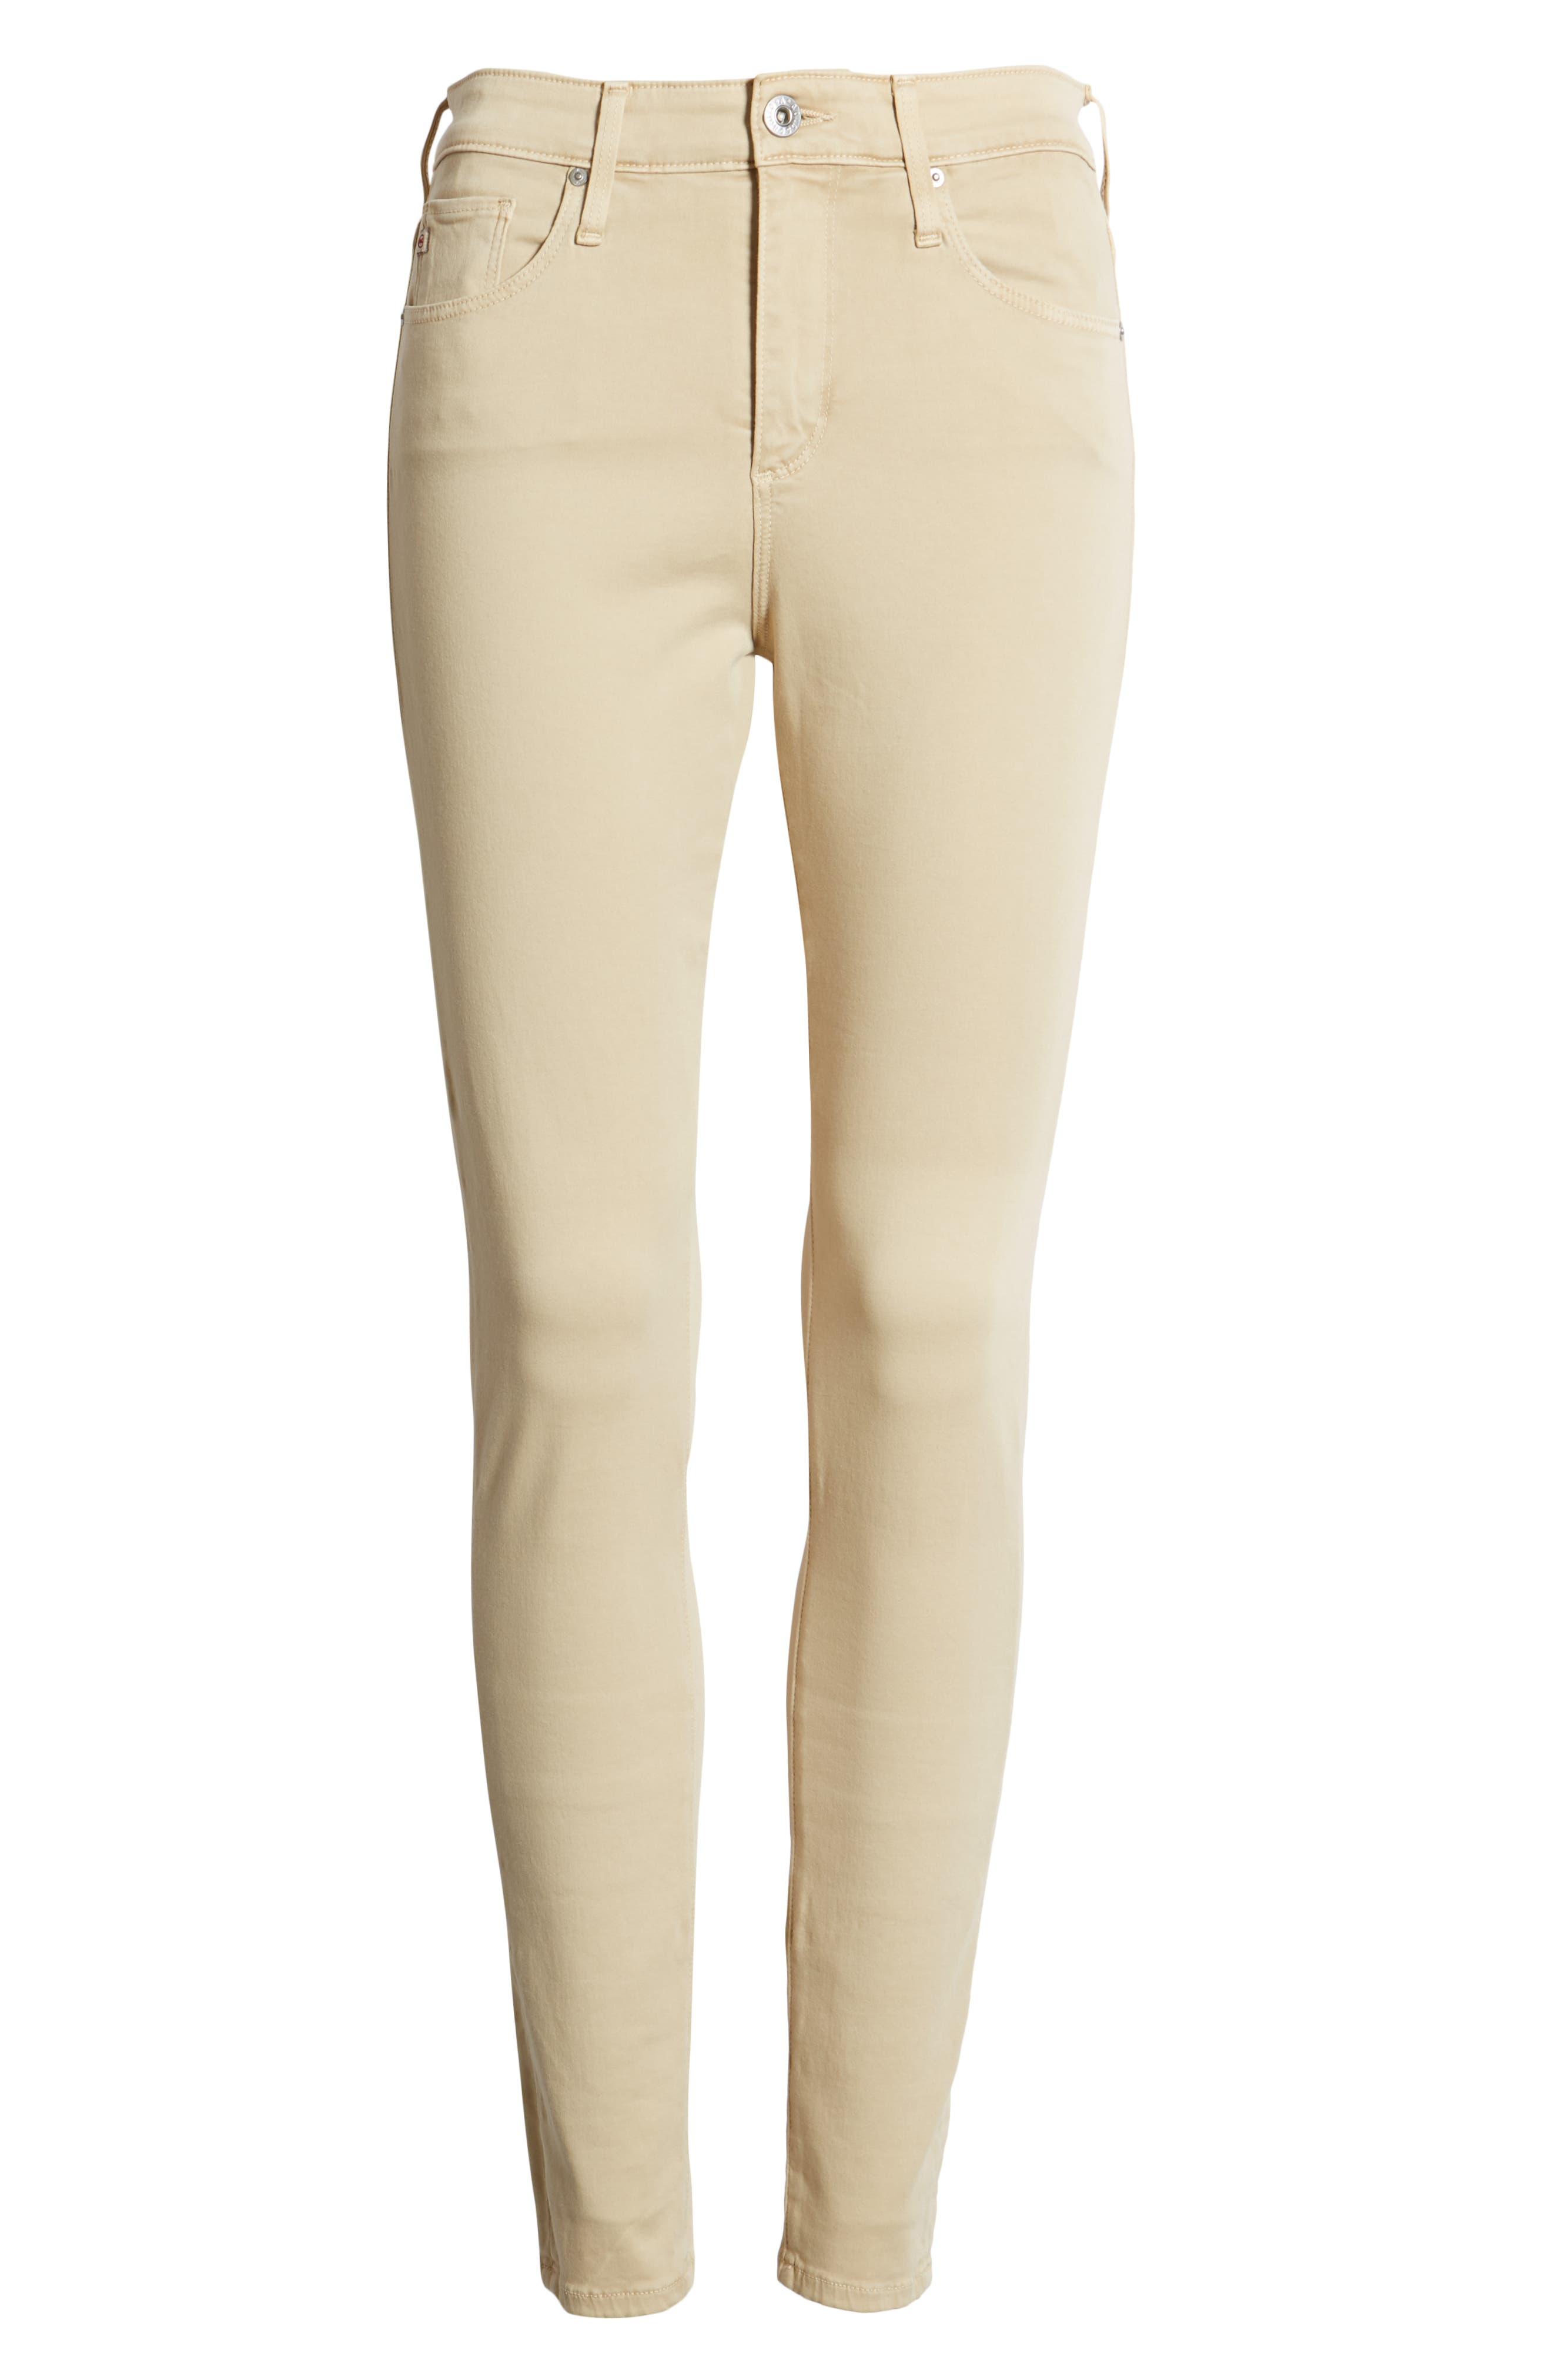 Farrah High Waist Ankle Skinny Jeans,                             Alternate thumbnail 7, color,                             SULFUR FRESH SAND